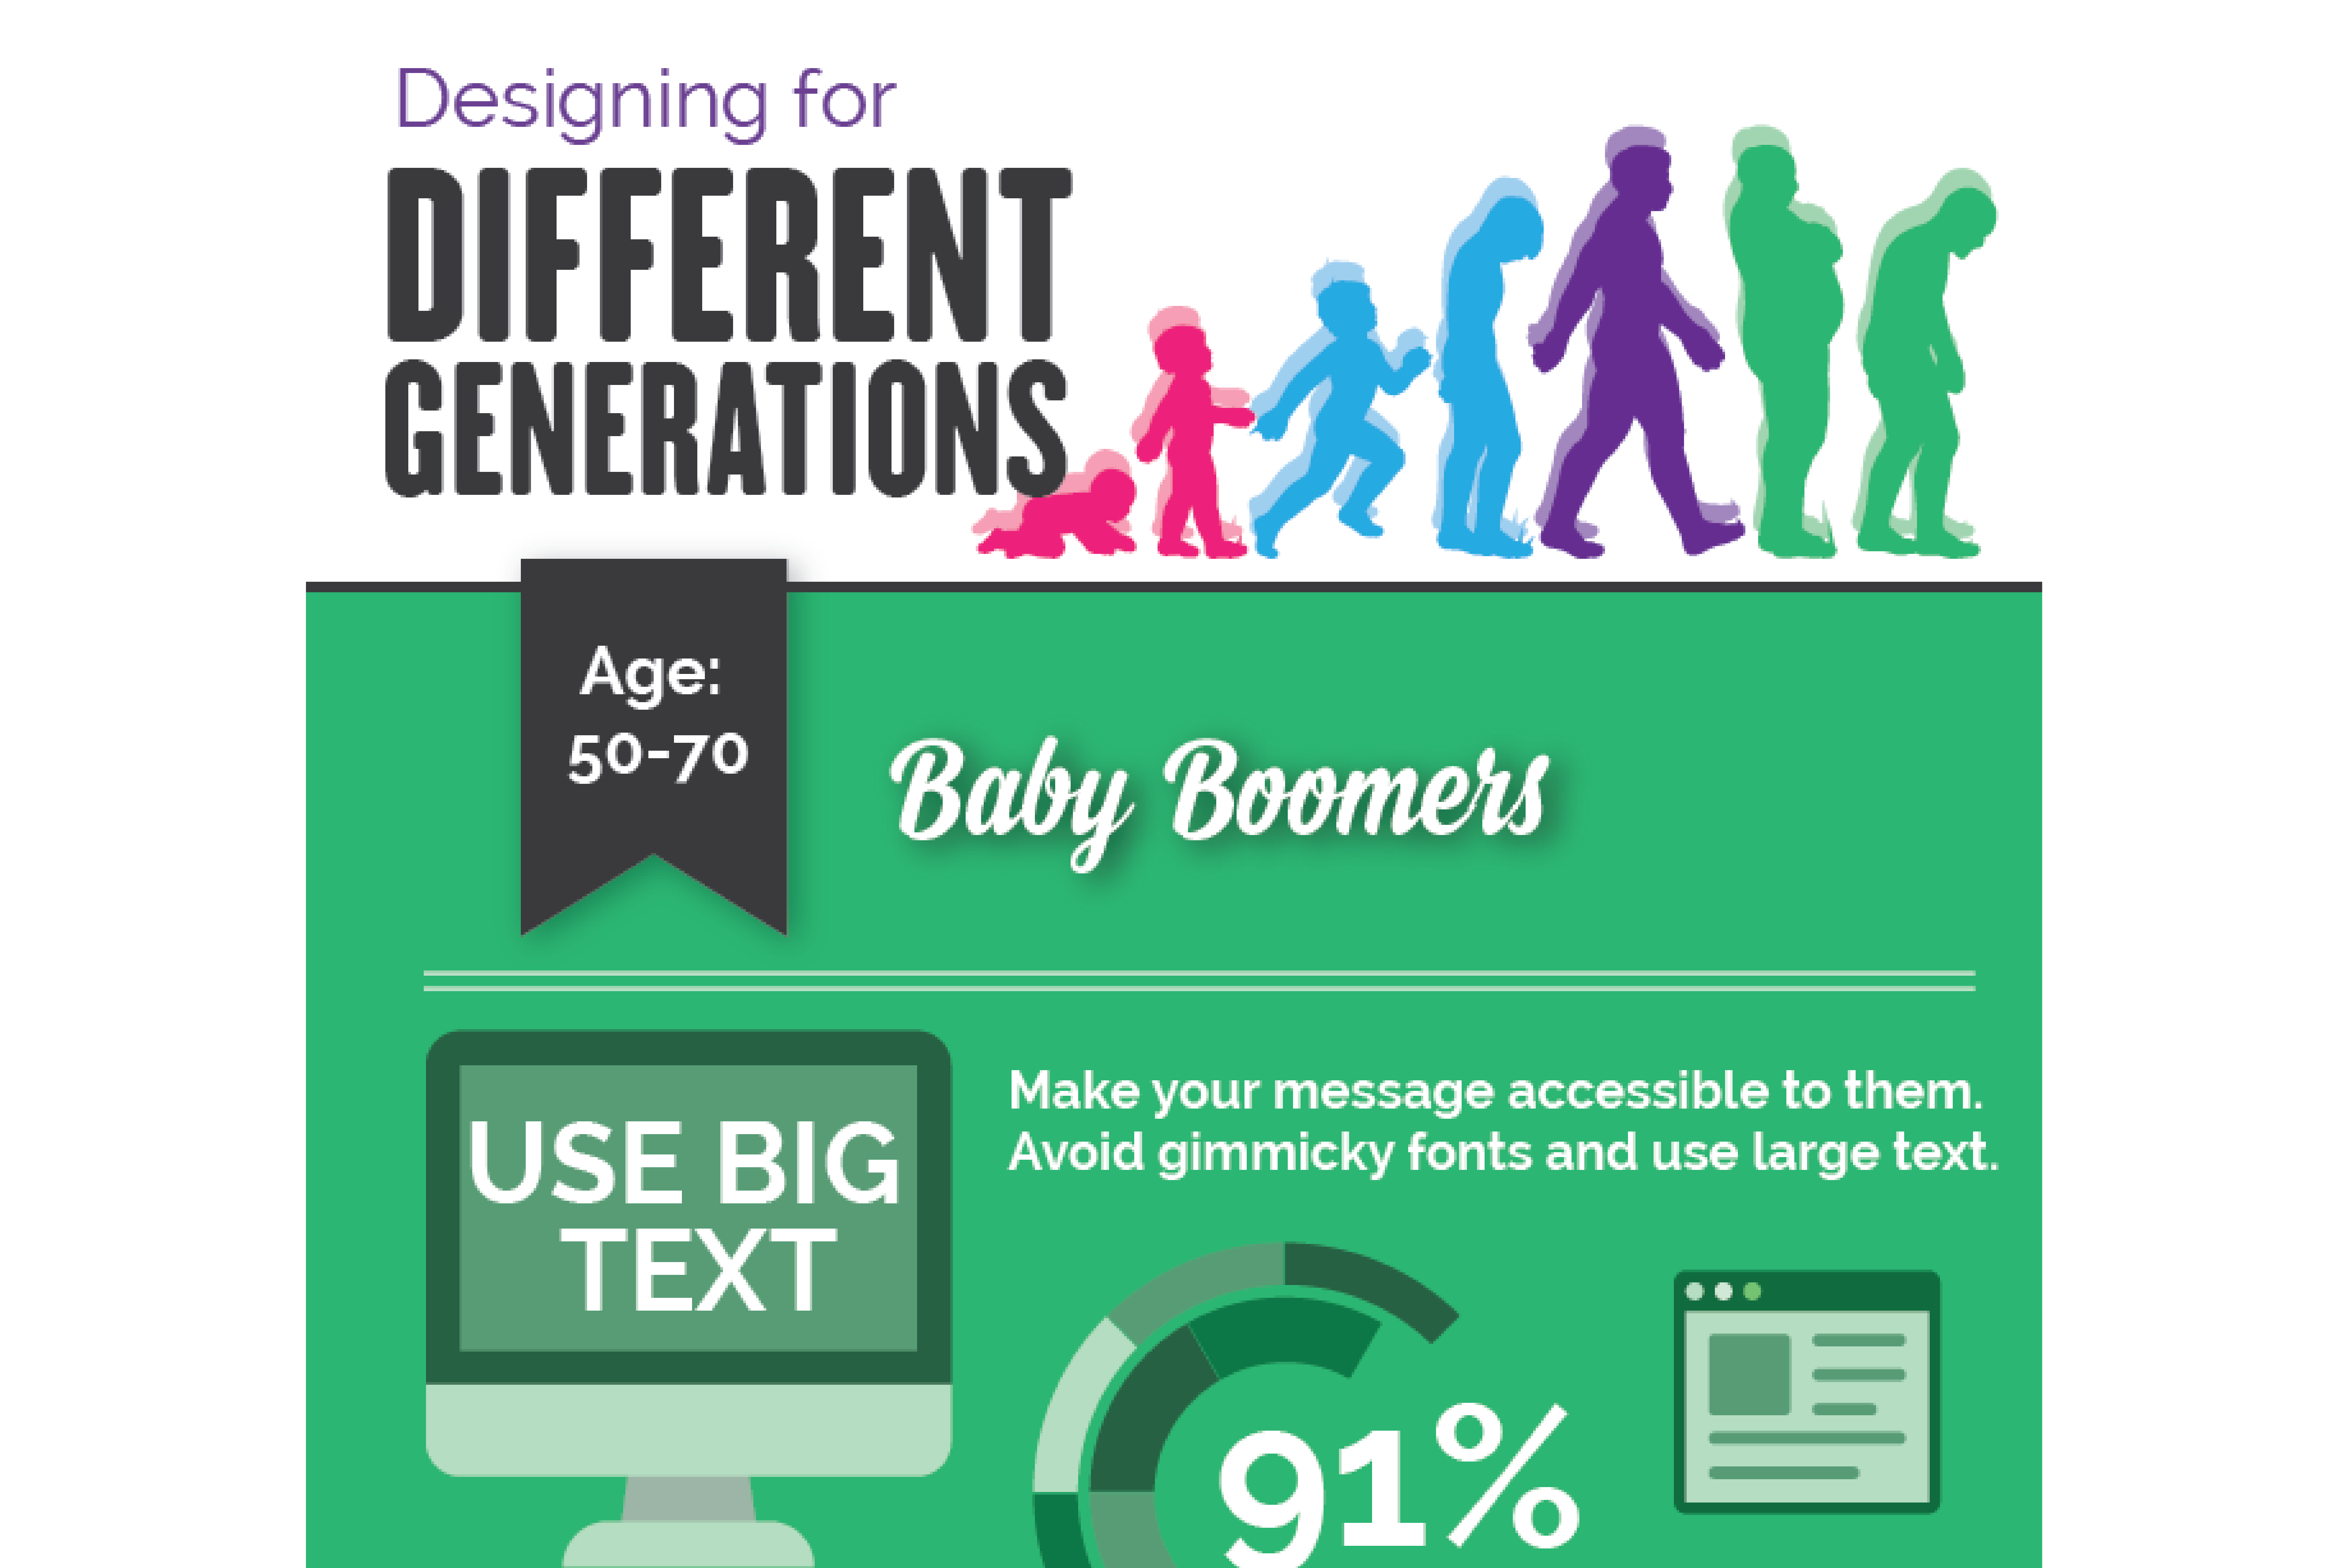 [Infographic] Design for the right generation and increase engagement